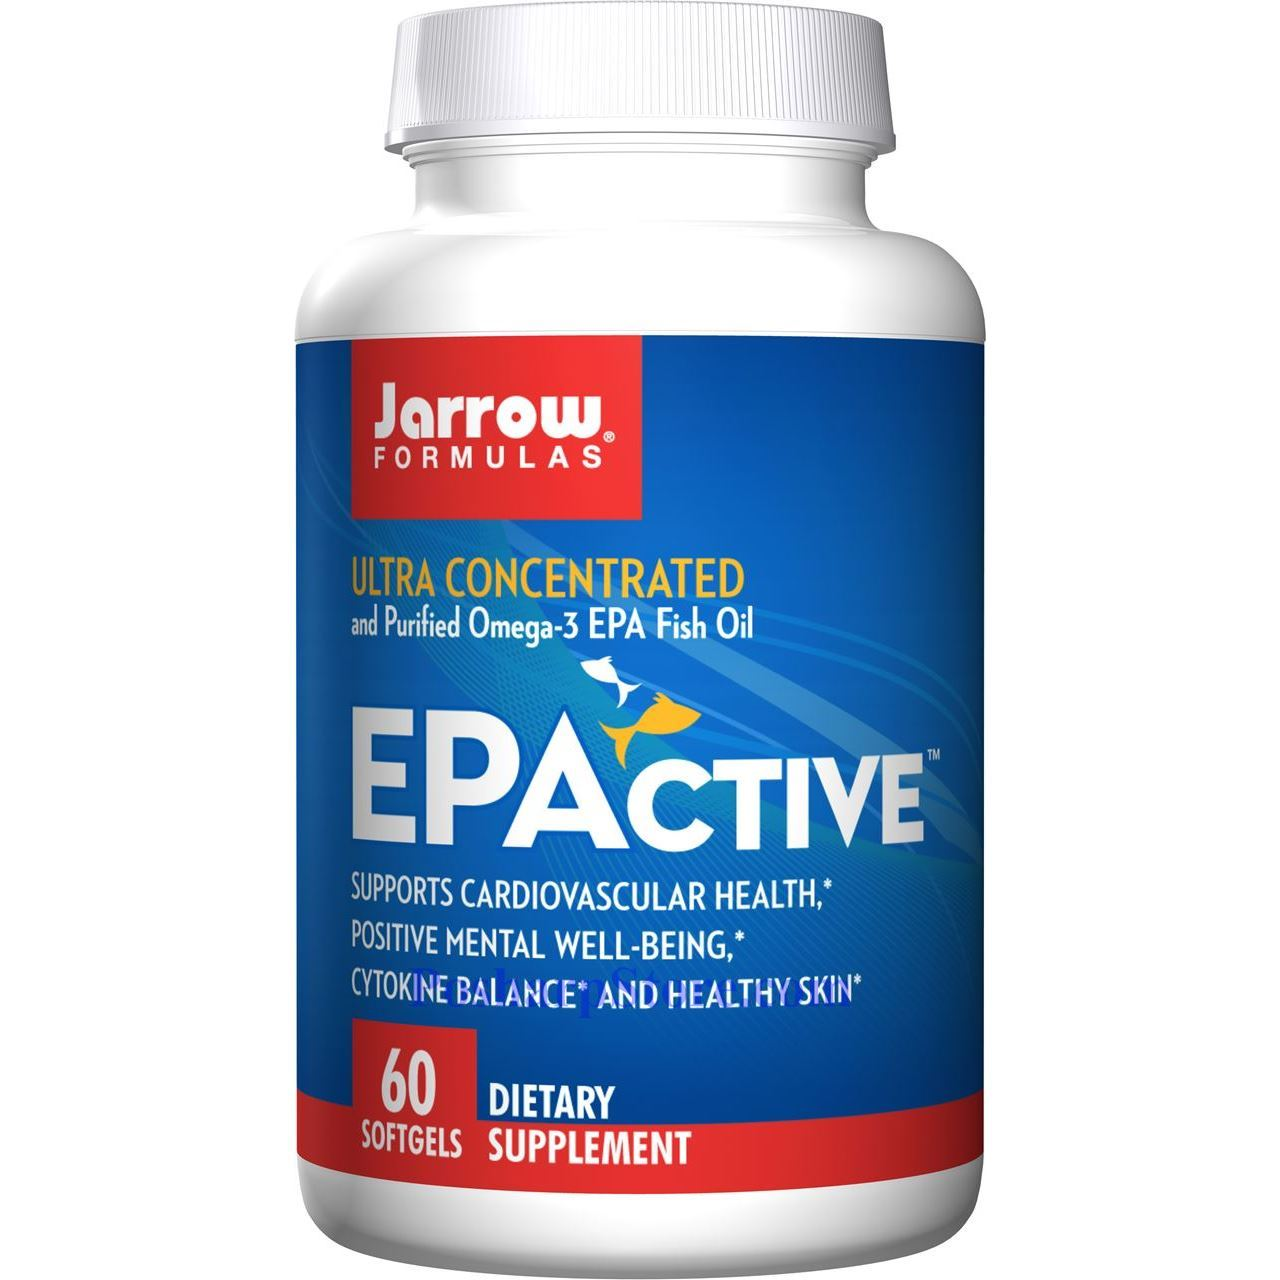 Picture for category Jarrow Formulas EPActive Ultra Concentrated and Purified Omega-3 EPA Fish Oil 60 Softgels